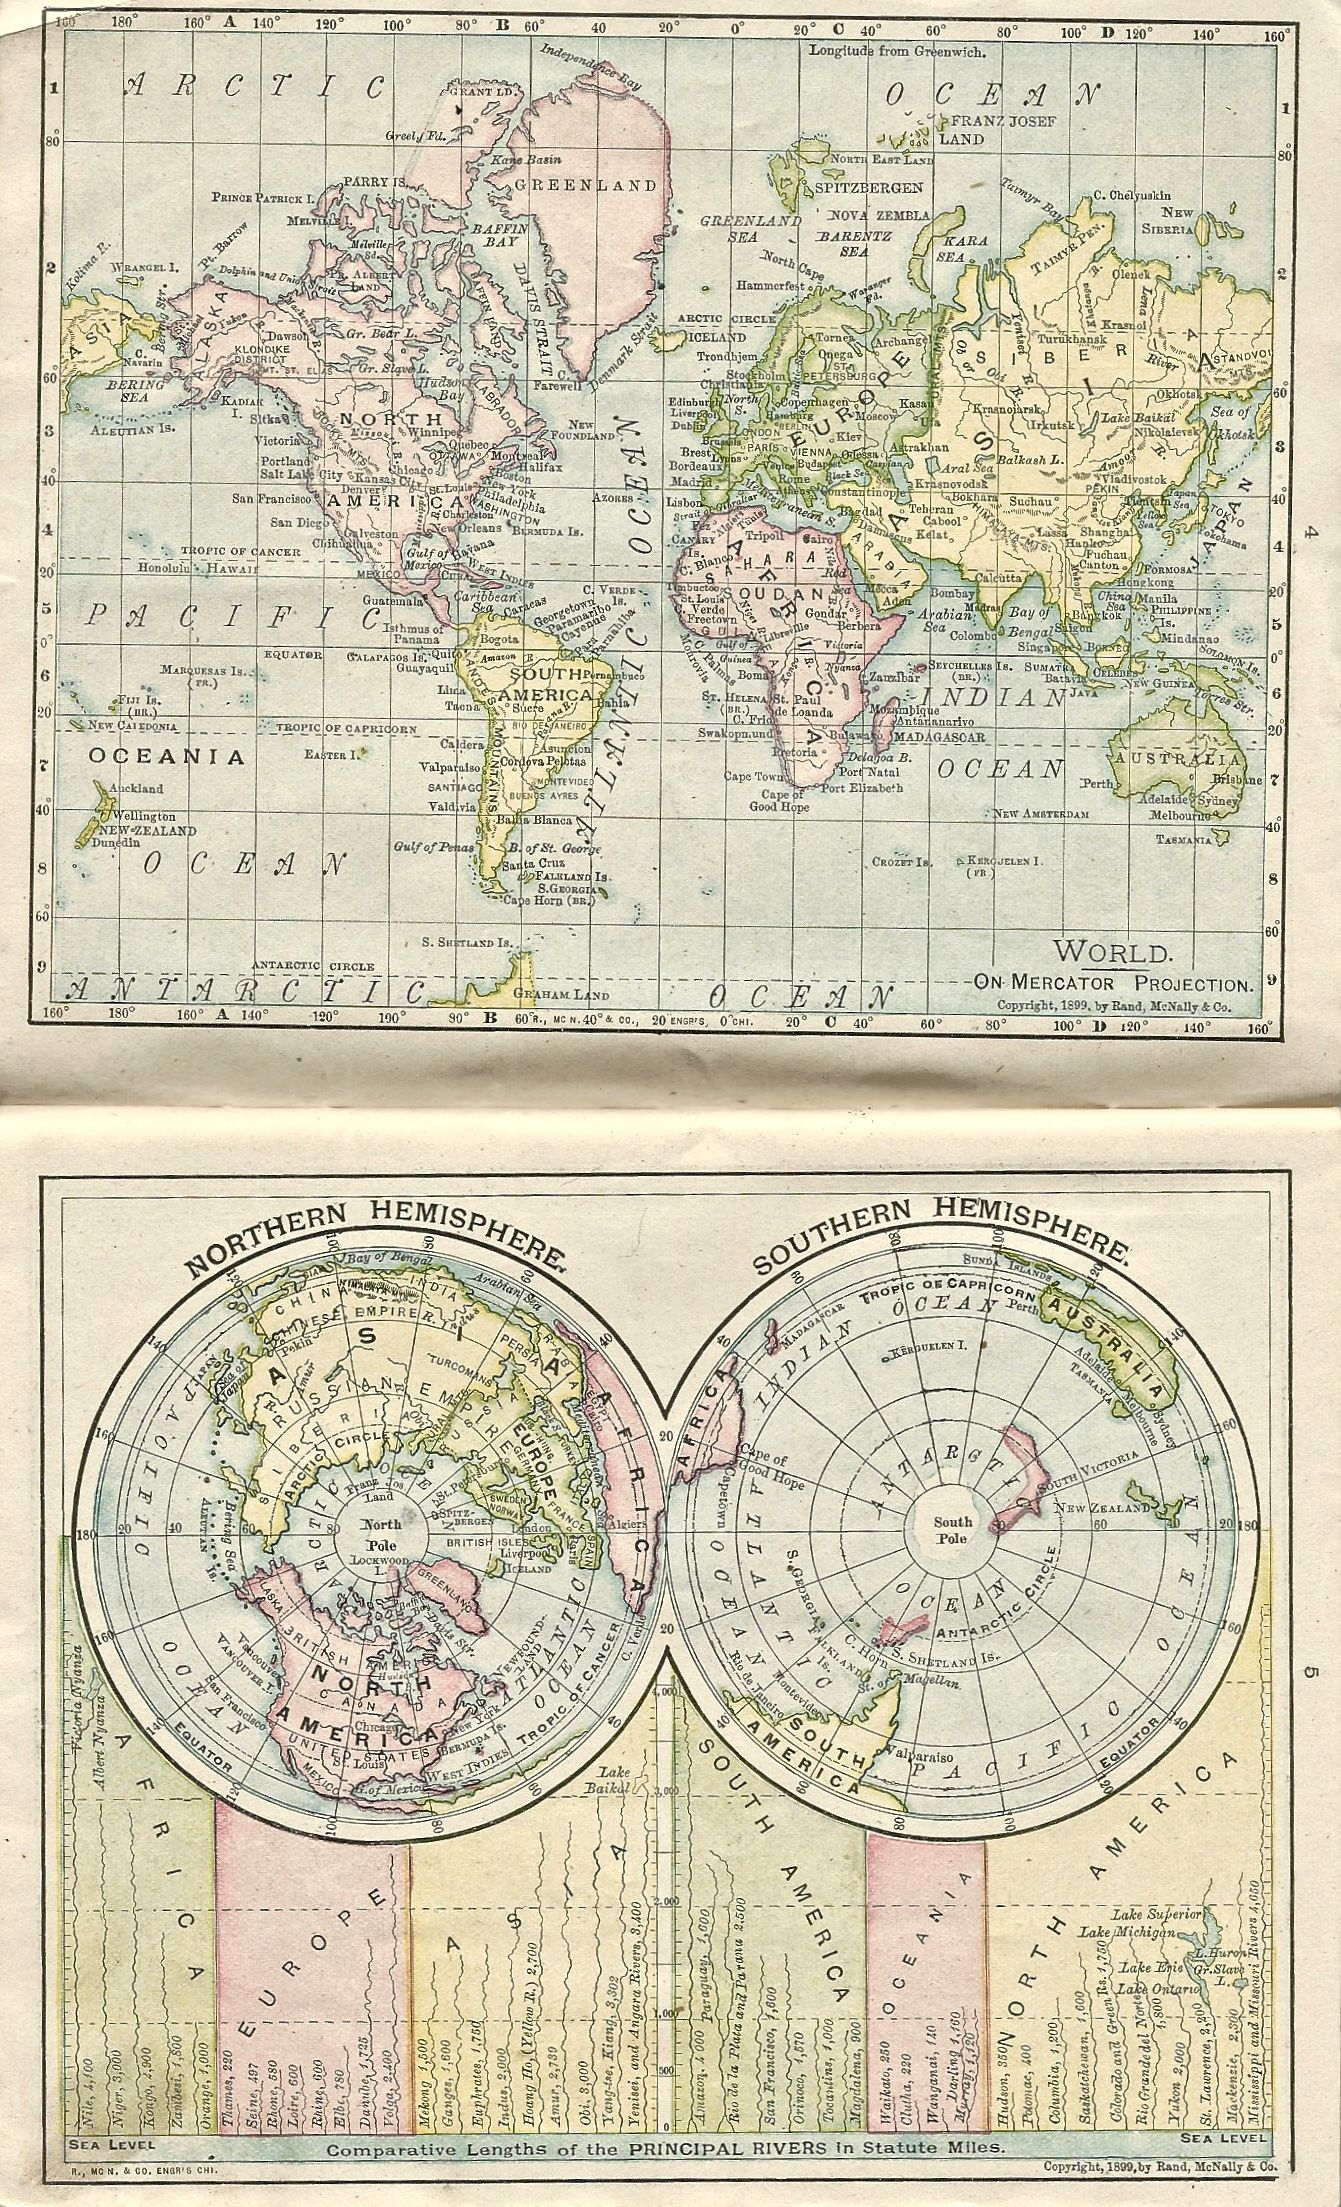 1899 maps of the world on mercator projection and the northern and 1899 maps of the world on mercator projection and the northern and southern hemispheres gumiabroncs Image collections